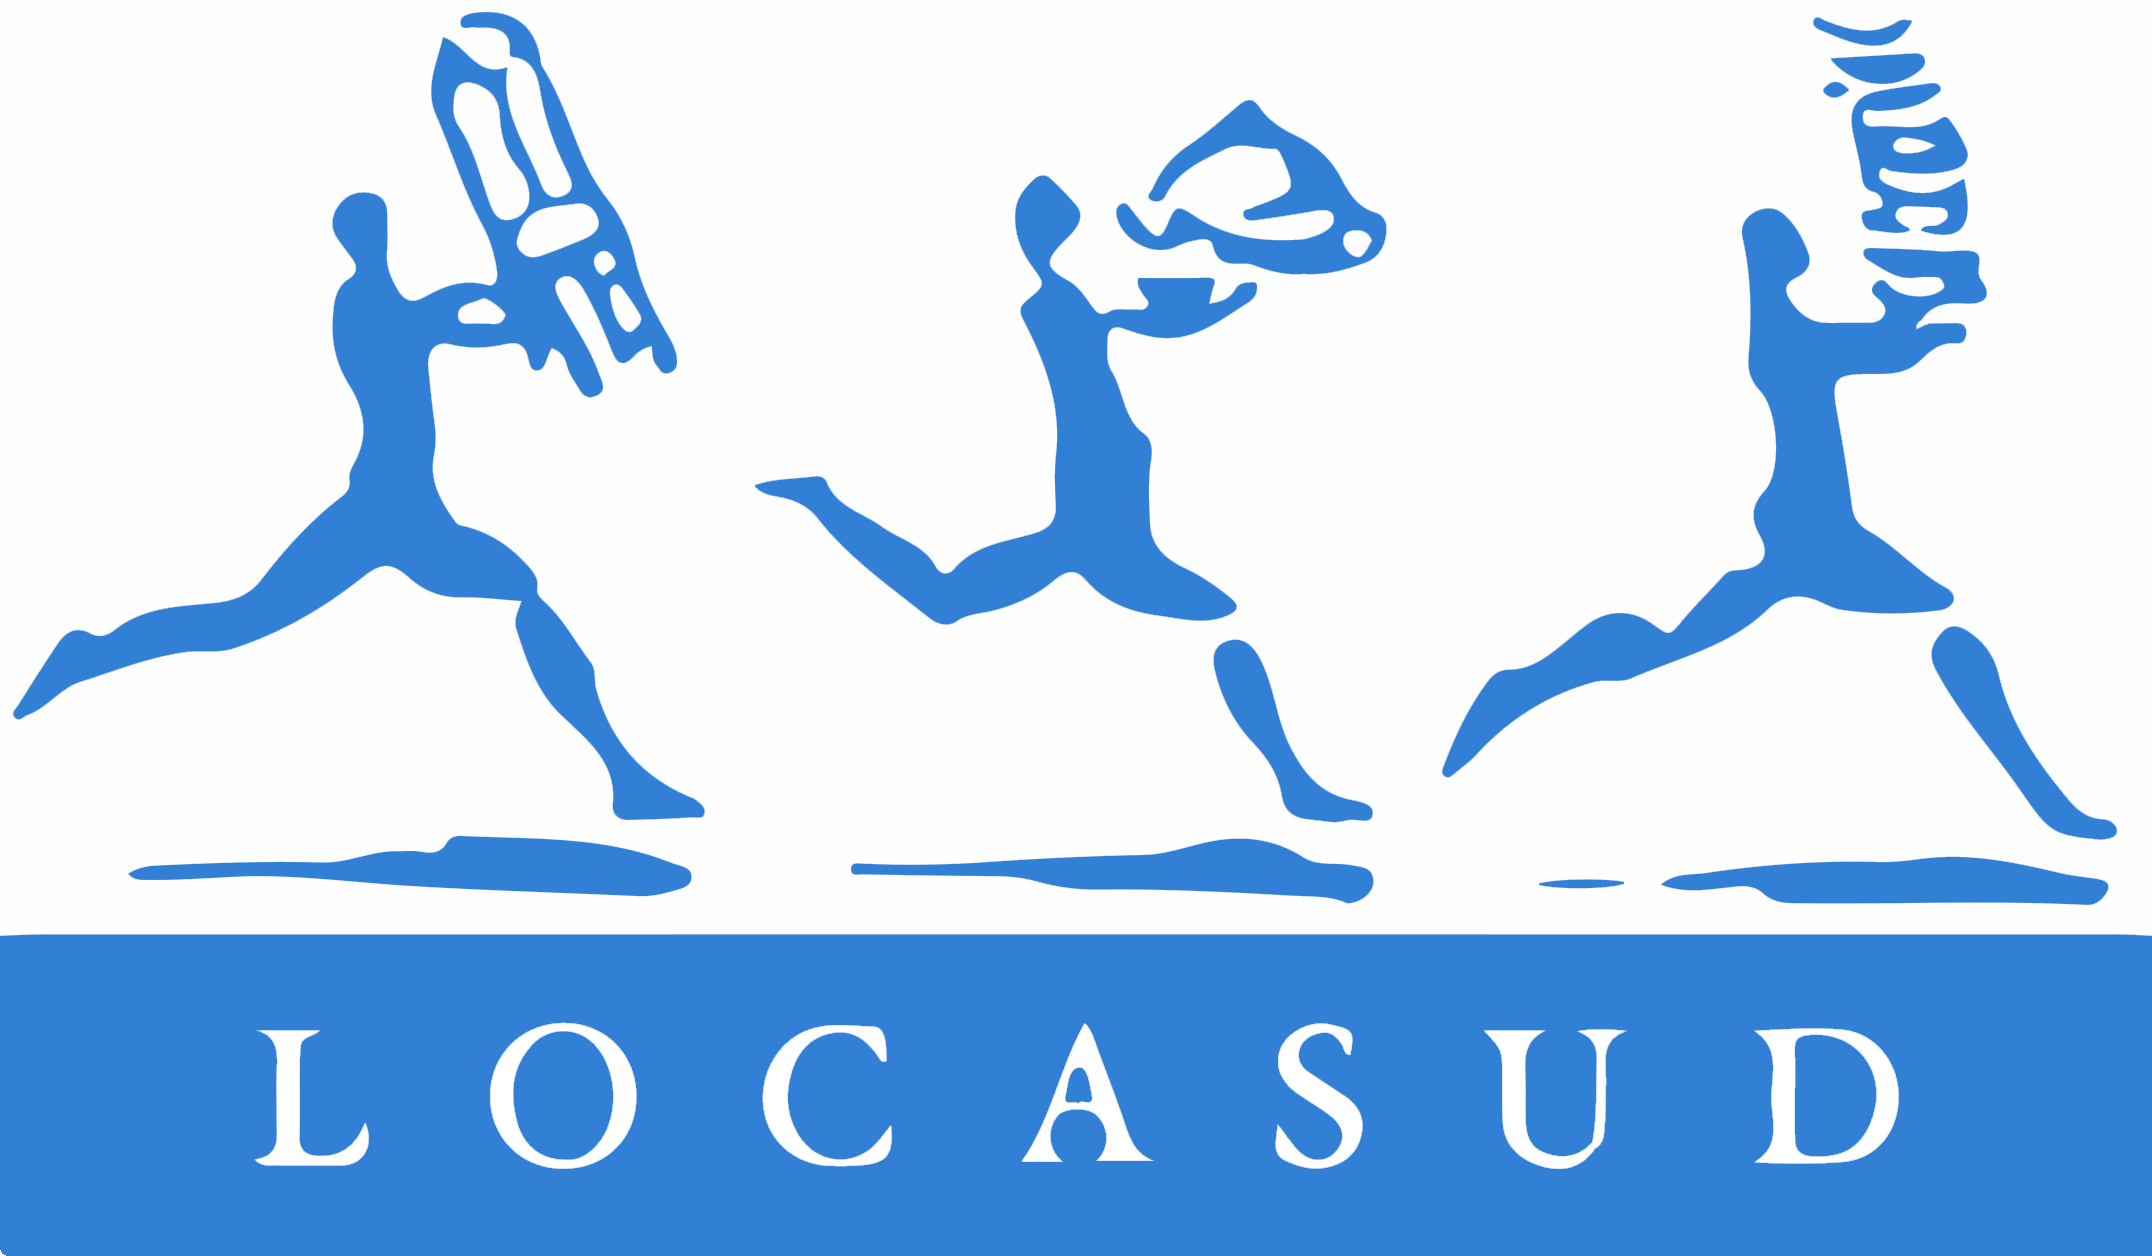 Locasud